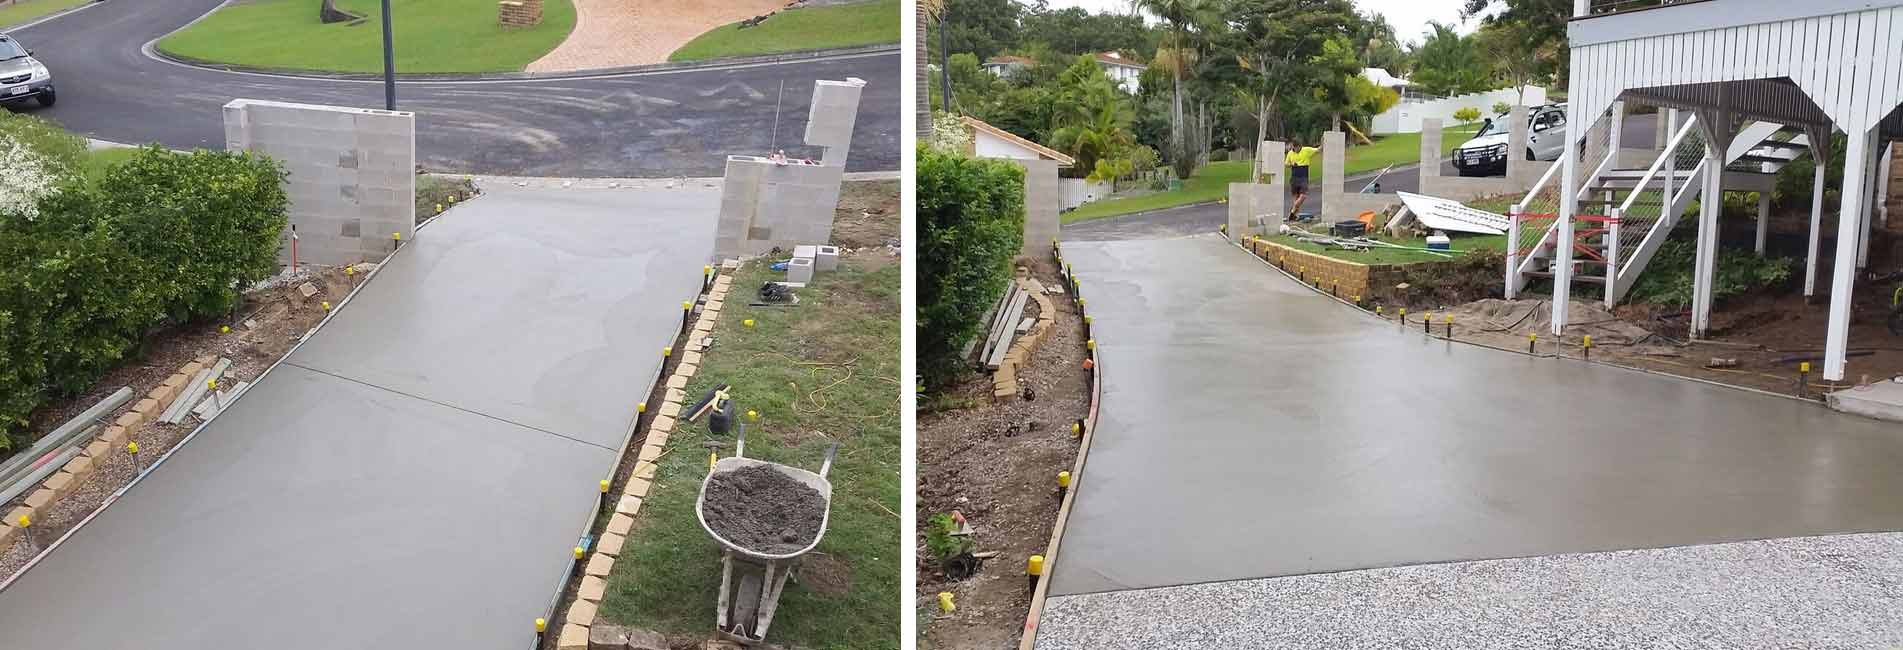 Concreting Brightwater, Shed Slabs Nambour, Coloured Concrete Parklakes, Concreter Kiama, Concreting Contractor Mountain Creek, Concretor Kawana, Concreter Brightwater, Driveways Nambour, Exposed Concrete Parklakes, Decorative Concrete Kiama, Stamped Concrete Mountain Creek